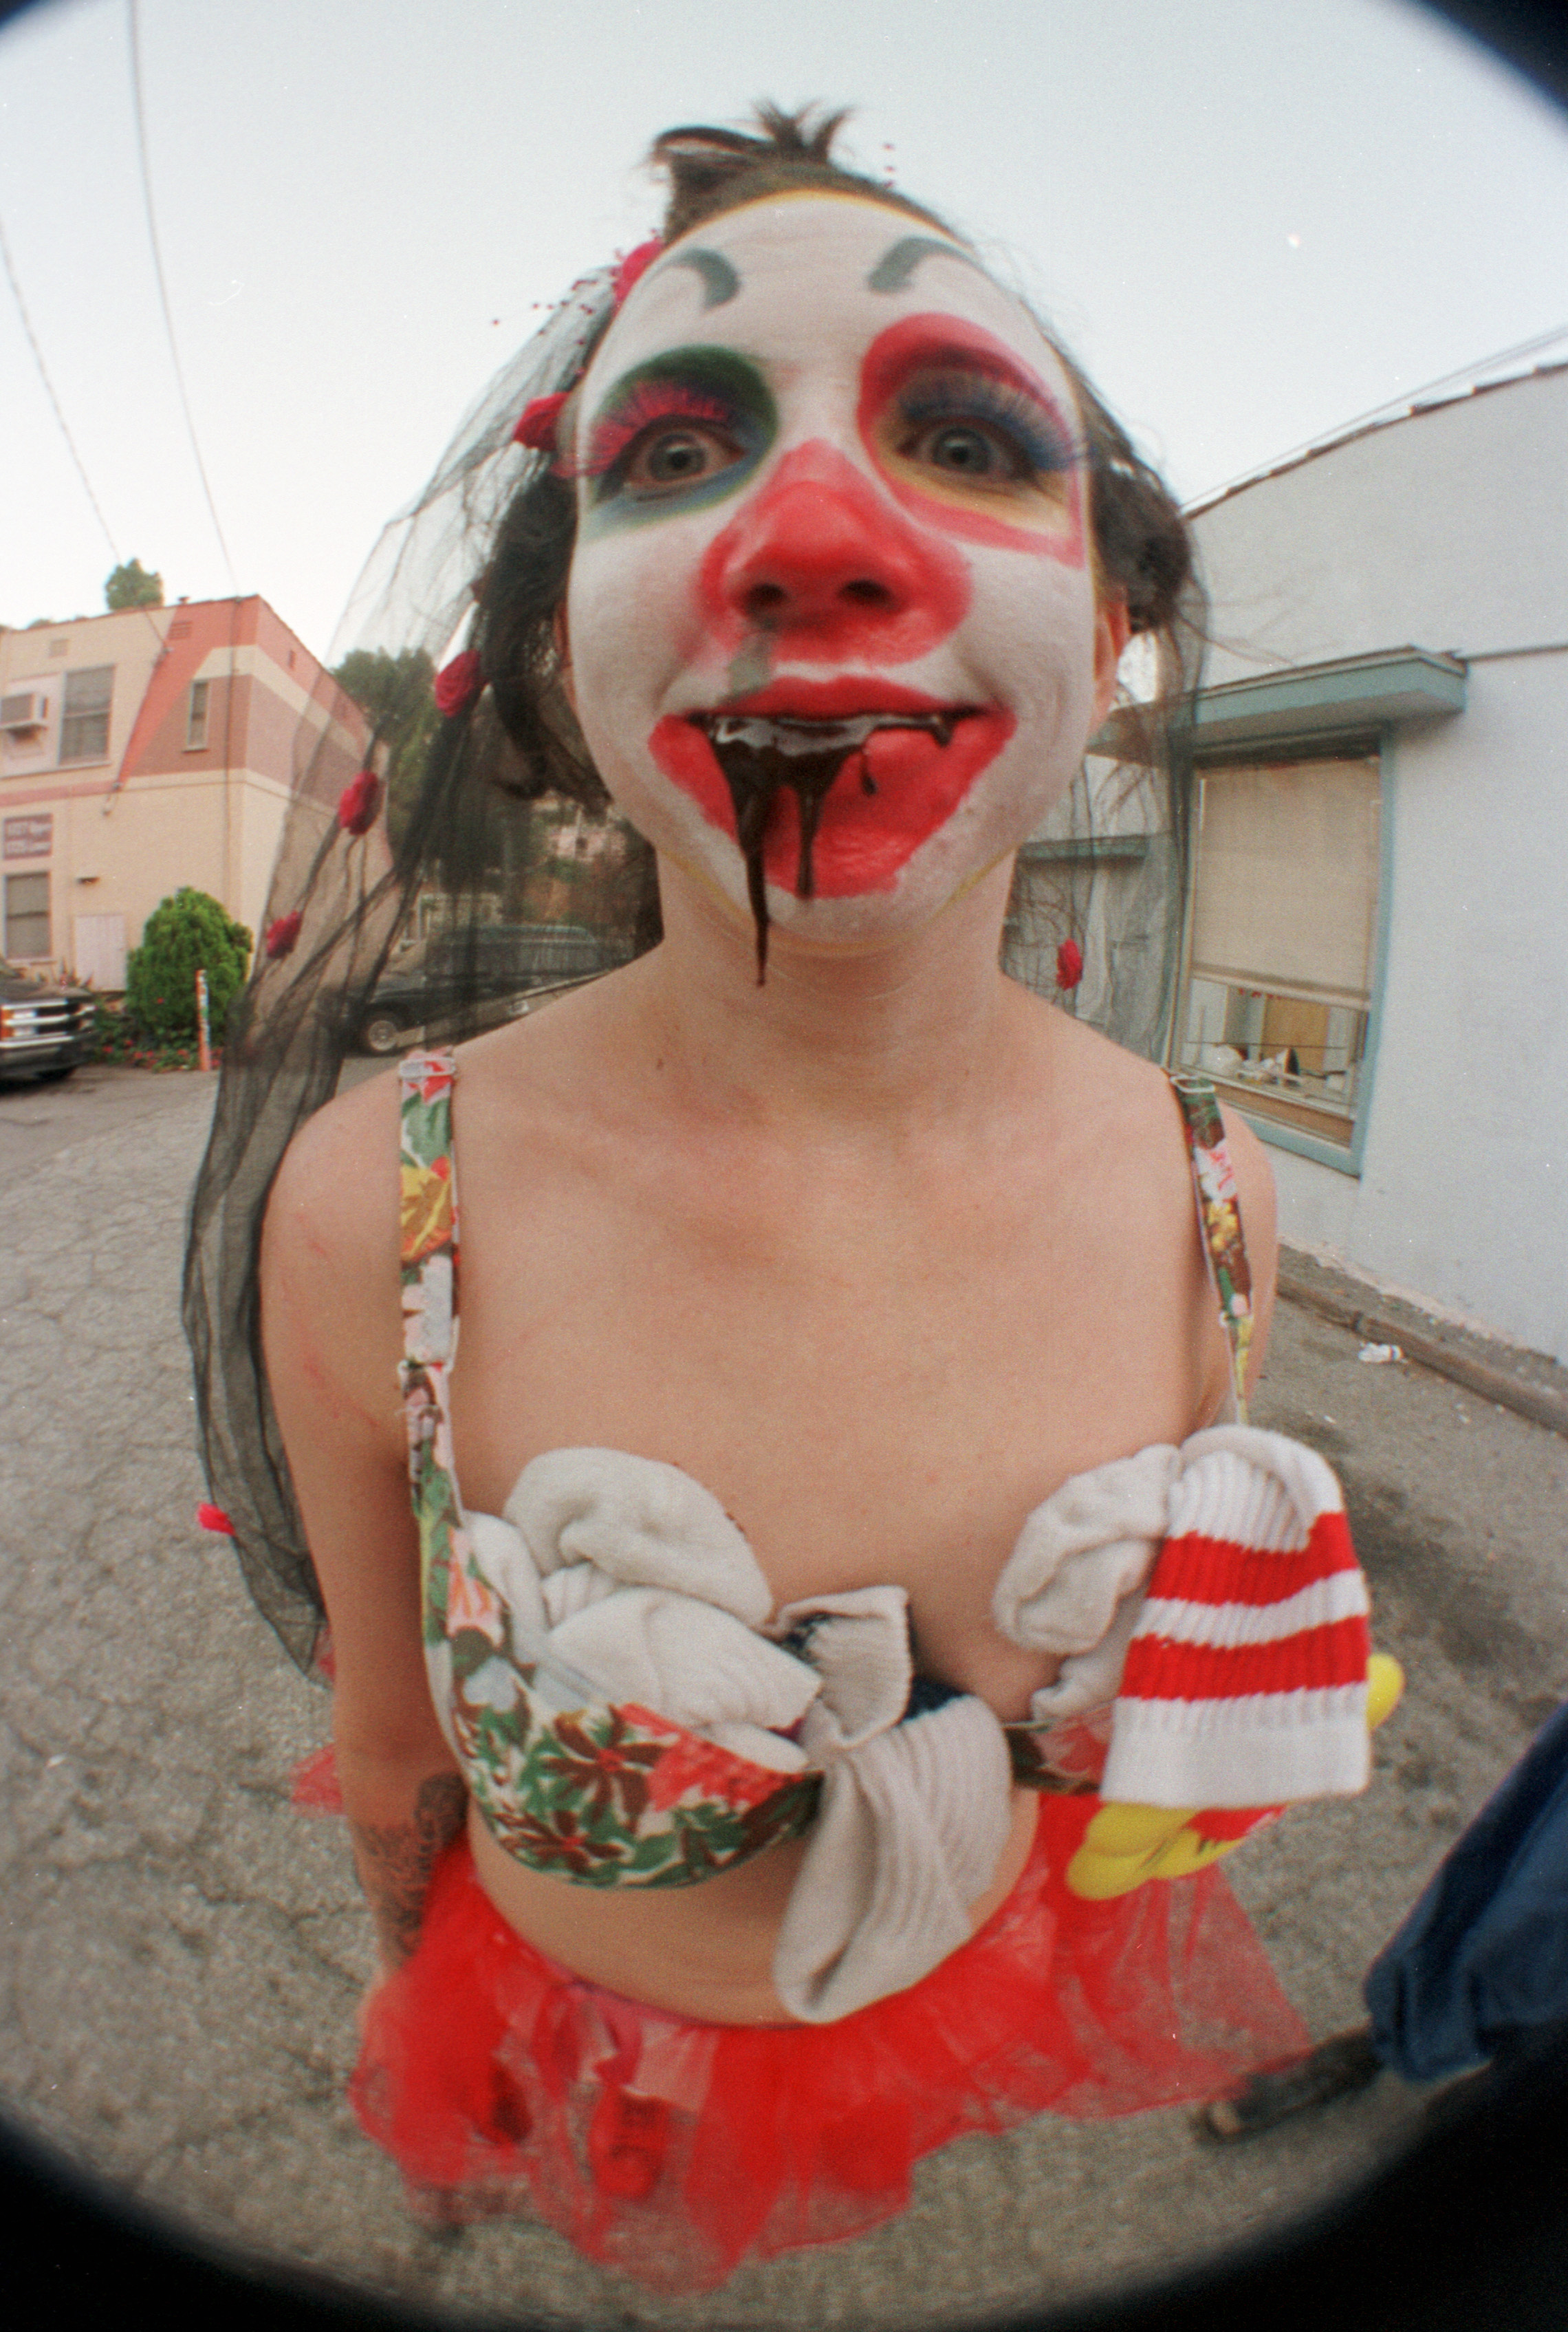 Chuckles the Clown, star of Chicken John and Dannygirl's Cirkus Redickuless - photo by Phillip Glau